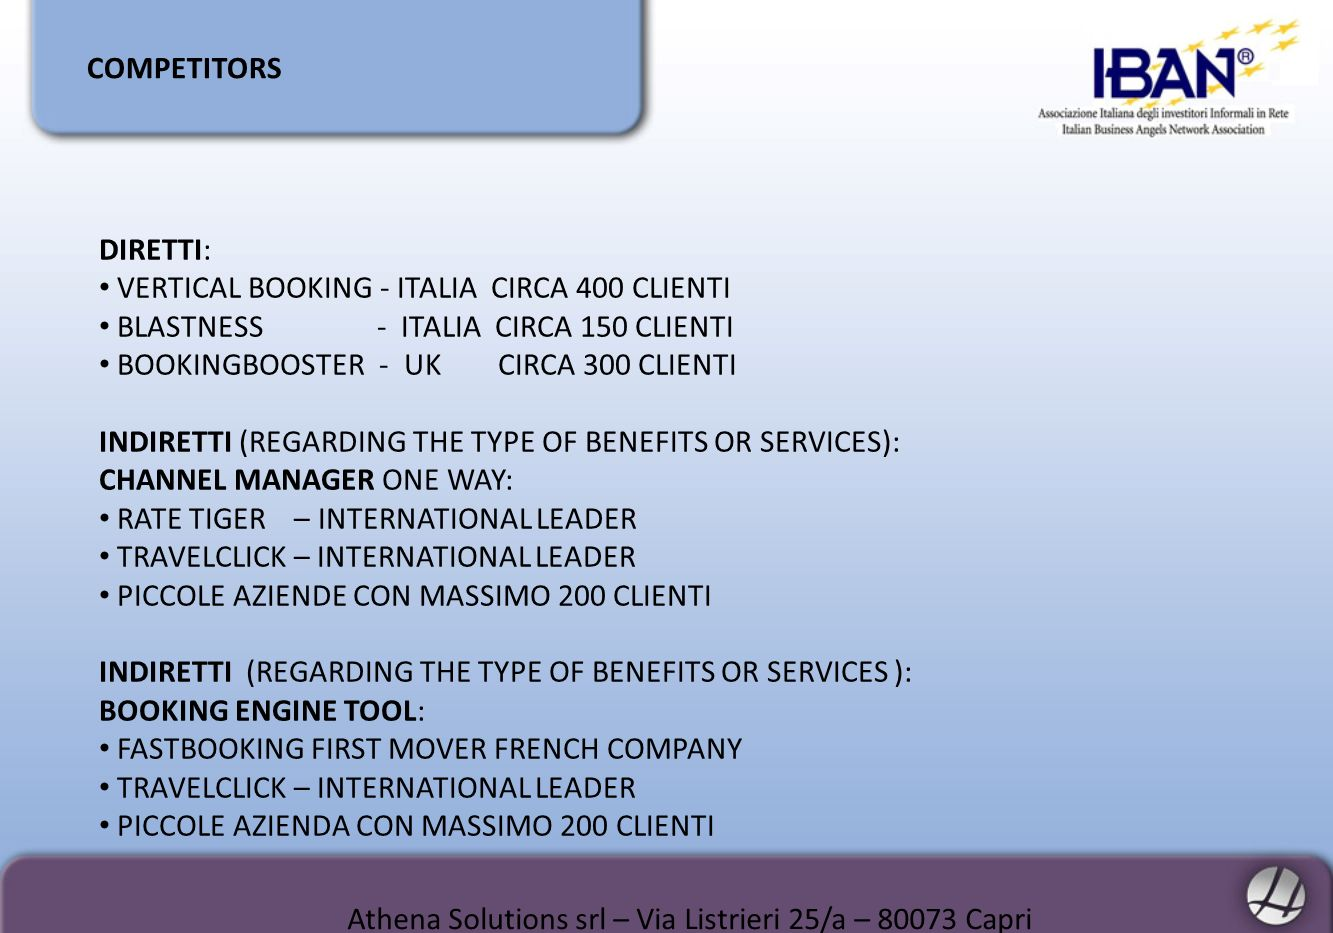 COMPETITORS DIRETTI: VERTICAL BOOKING - ITALIA CIRCA 400 CLIENTI BLASTNESS - ITALIA CIRCA 150 CLIENTI BOOKINGBOOSTER - UK CIRCA 300 CLIENTI INDIRETTI (REGARDING THE TYPE OF BENEFITS OR SERVICES): CHANNEL MANAGER ONE WAY: RATE TIGER – INTERNATIONAL LEADER TRAVELCLICK – INTERNATIONAL LEADER PICCOLE AZIENDE CON MASSIMO 200 CLIENTI INDIRETTI (REGARDING THE TYPE OF BENEFITS OR SERVICES ): BOOKING ENGINE TOOL: FASTBOOKING FIRST MOVER FRENCH COMPANY TRAVELCLICK – INTERNATIONAL LEADER PICCOLE AZIENDA CON MASSIMO 200 CLIENTI Athena Solutions srl – Via Listrieri 25/a – 80073 Capri